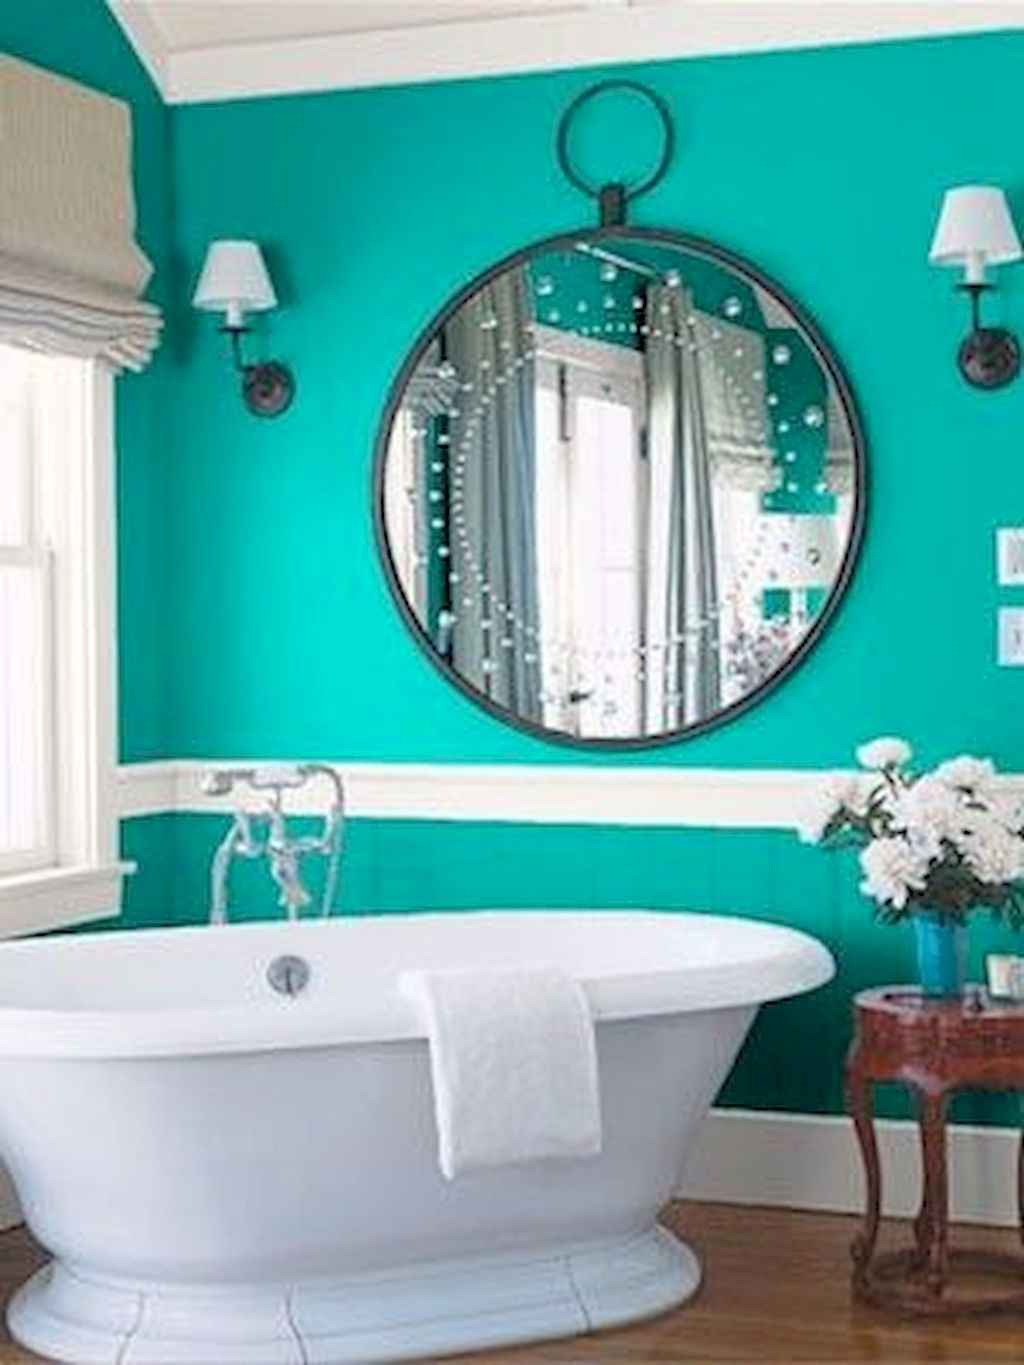 55 Cool and Relax Bathroom Decor Ideas (12)